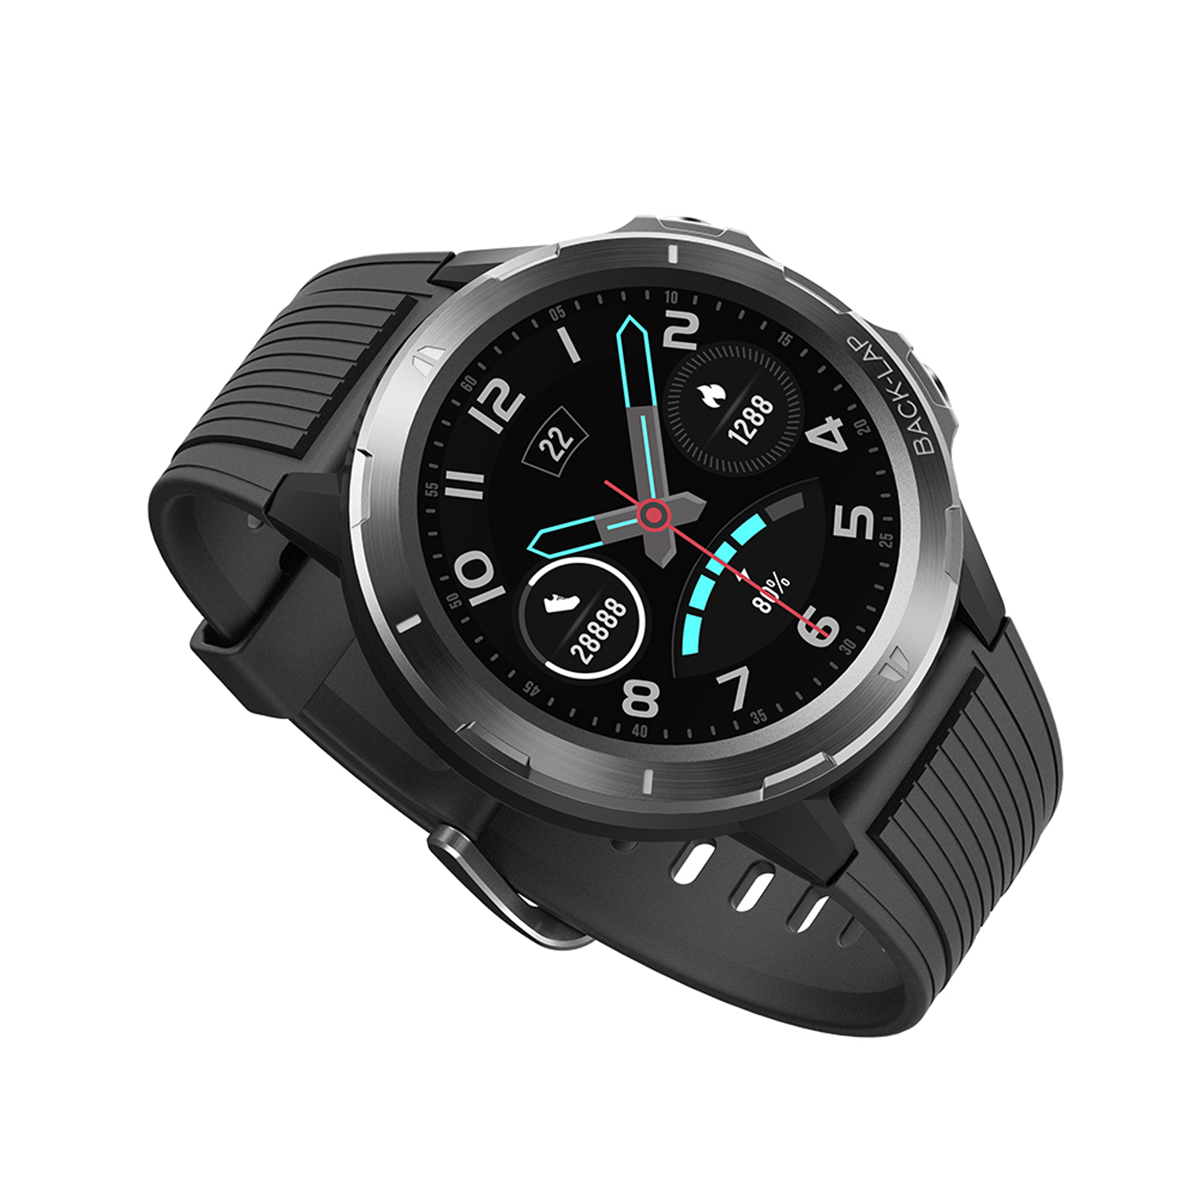 Image 2 - UMIDIGI Uwatch GT Smart Watch 5ATM Waterproof BT5.0 Heart Rate  Sleep Monitor Fitness Tracker Pedometer Step Calories SmartwatchSmart  Watches   </title> <meta name=keywords content=Smart Watches, Cheap Smart Watches, UMIDIGI Uwatch GT Smart Watch 5ATM Waterproof BT5.0 Heart Rate Sleep Monitor Fitness Tracker Pedometer Step Calories Smartwatch> <meta name=description content=Cheap Smart Watches, Buy Directly from China Suppliers:UMIDIGI Uwatch GT Smart Watch 5ATM Waterproof BT5.0 Heart Rate Sleep Monitor Fitness Tracker Pedometer Step Calories Smartwatch Enjoy ✓Free Shipping Worldwide! ✓Limited Time Sale✓Easy Return.> <meta name=google-translate-customization content=8daa66079a8aa29e-f219f934a1051f5a-ge19f8e1eaa3bf94b-e>      <meta name=viewport content=width=device-width, initial-scale=1.0, maximum-scale=1.0, user-scalable=no>  <meta name=data-spm content=a2g0o>   <meta property=og:url content=//www.aliexpress.com/item/4000460658604.html?src=ibdm_d03p0558e02r02